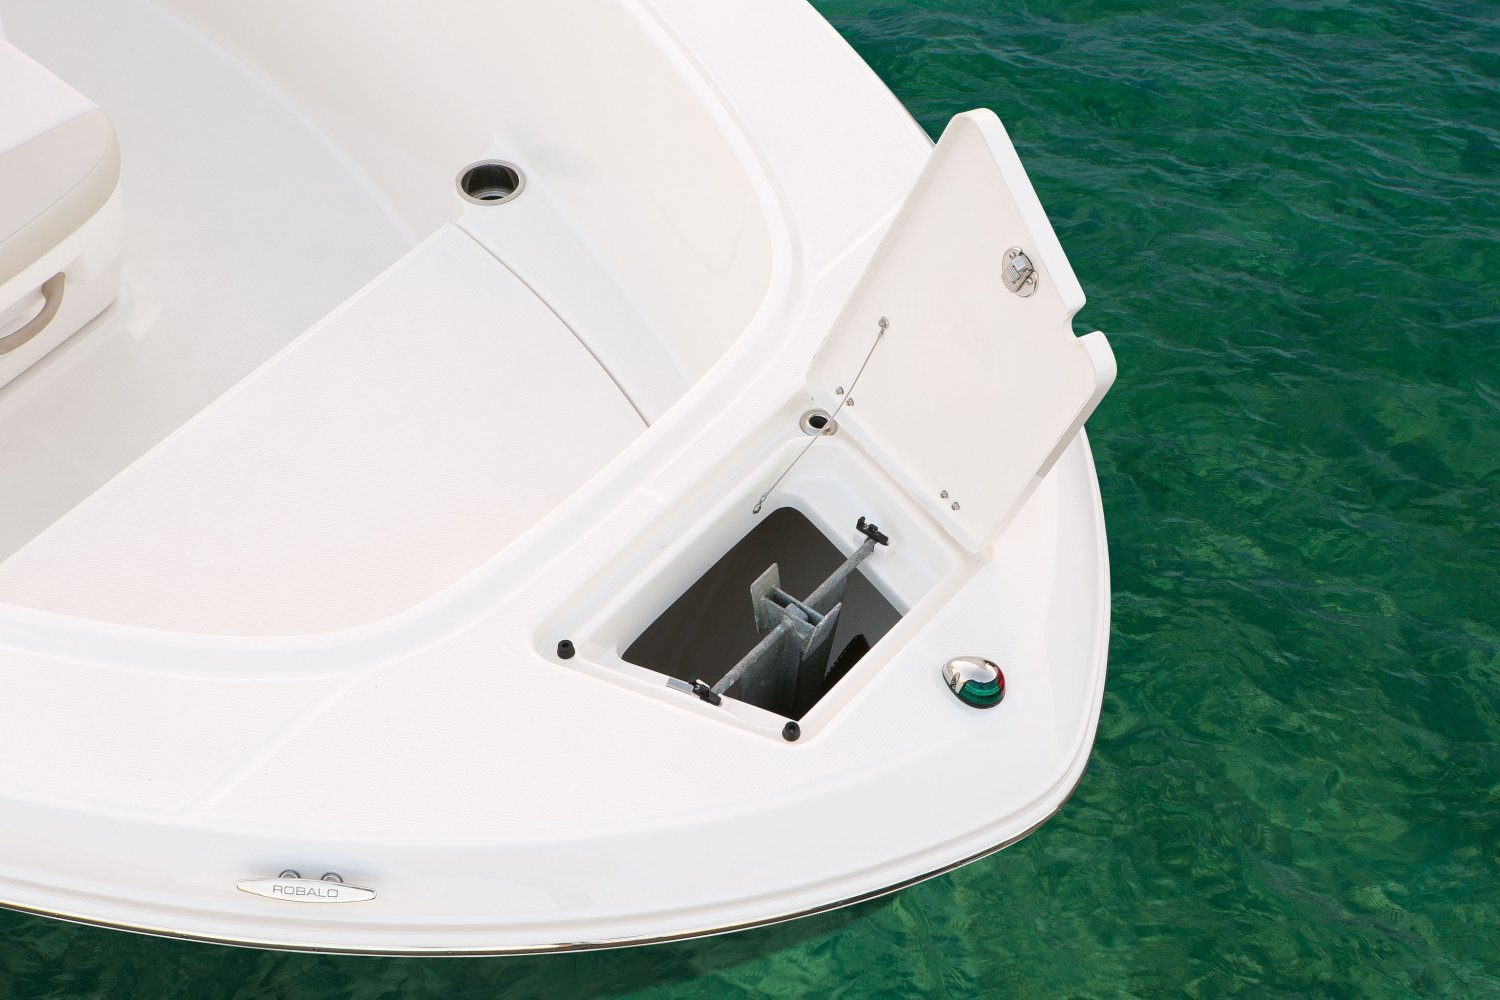 Robalo R180 - R180-AnchorLocker-16